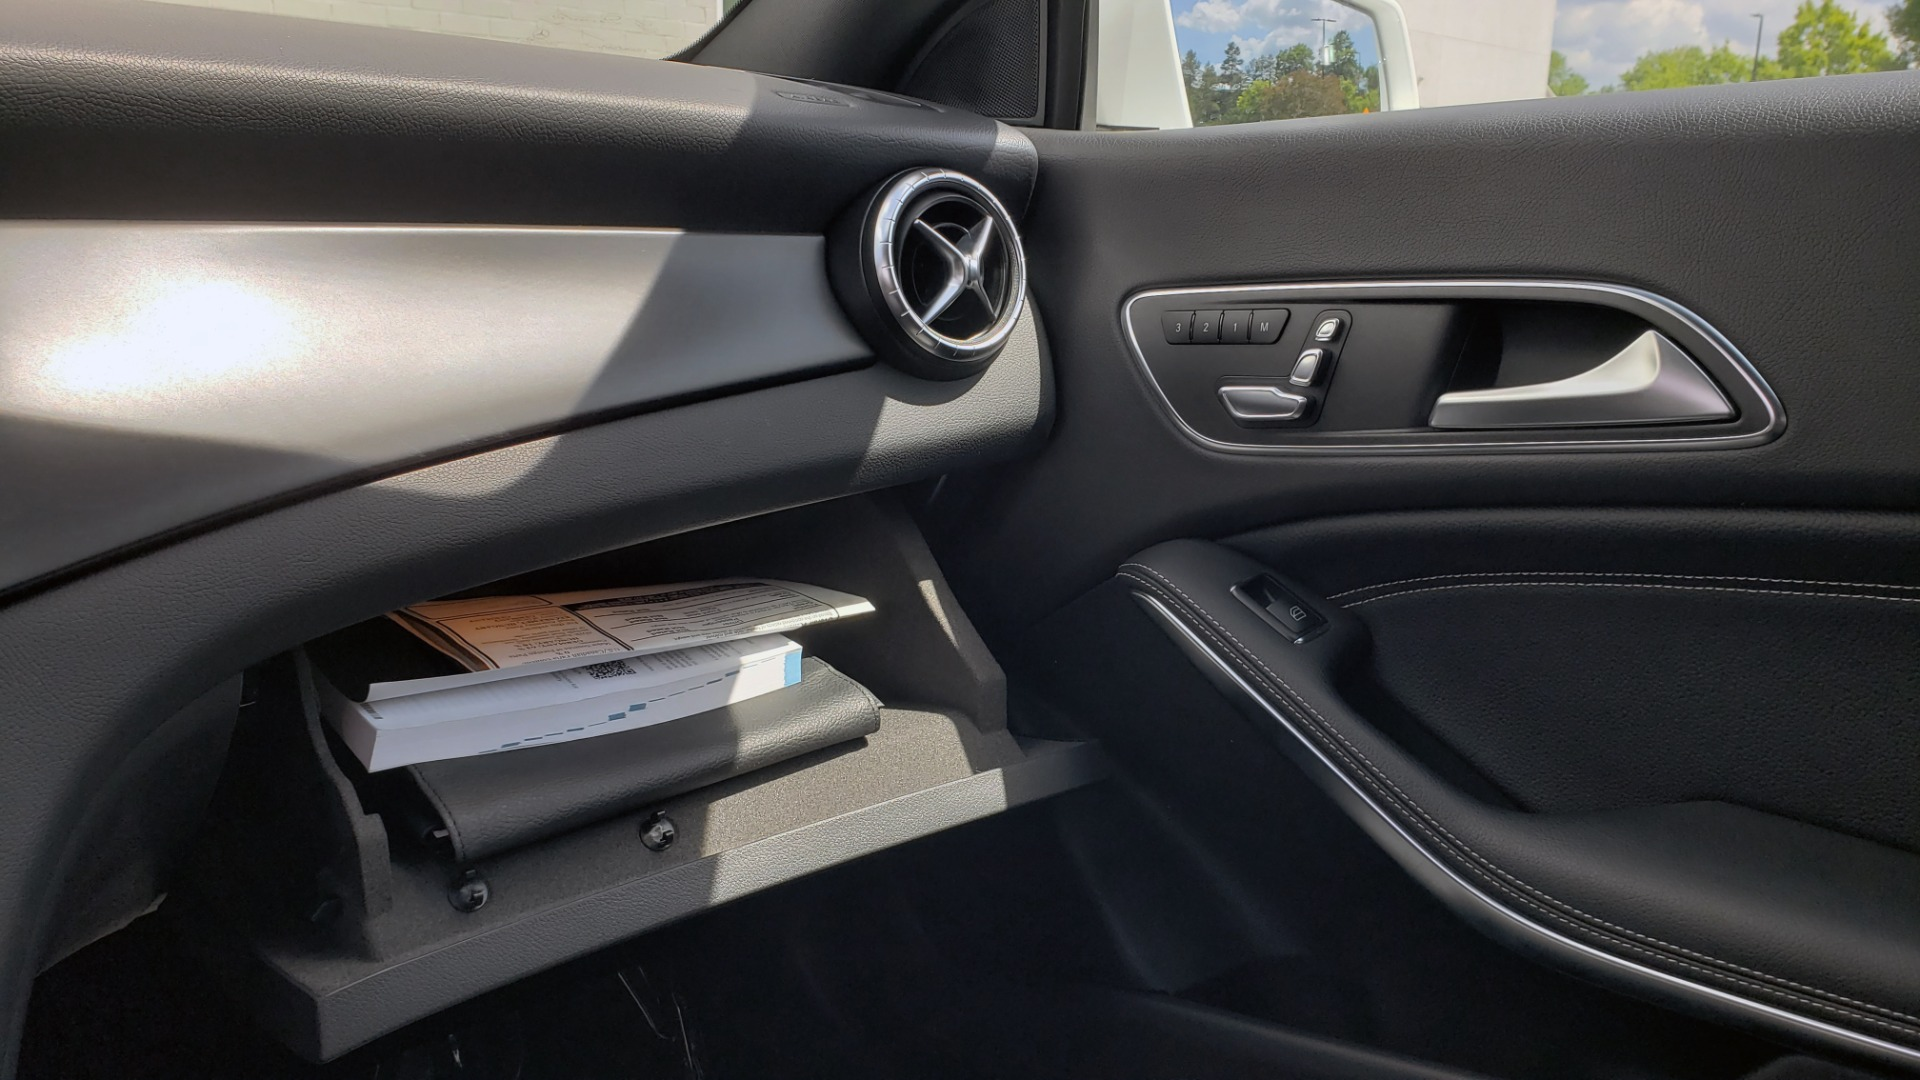 Used 2018 Mercedes-Benz CLA 250 4MATIC COUPE / PREMIUM / PANO-ROOF / APPLE / REARVIEW for sale Sold at Formula Imports in Charlotte NC 28227 51